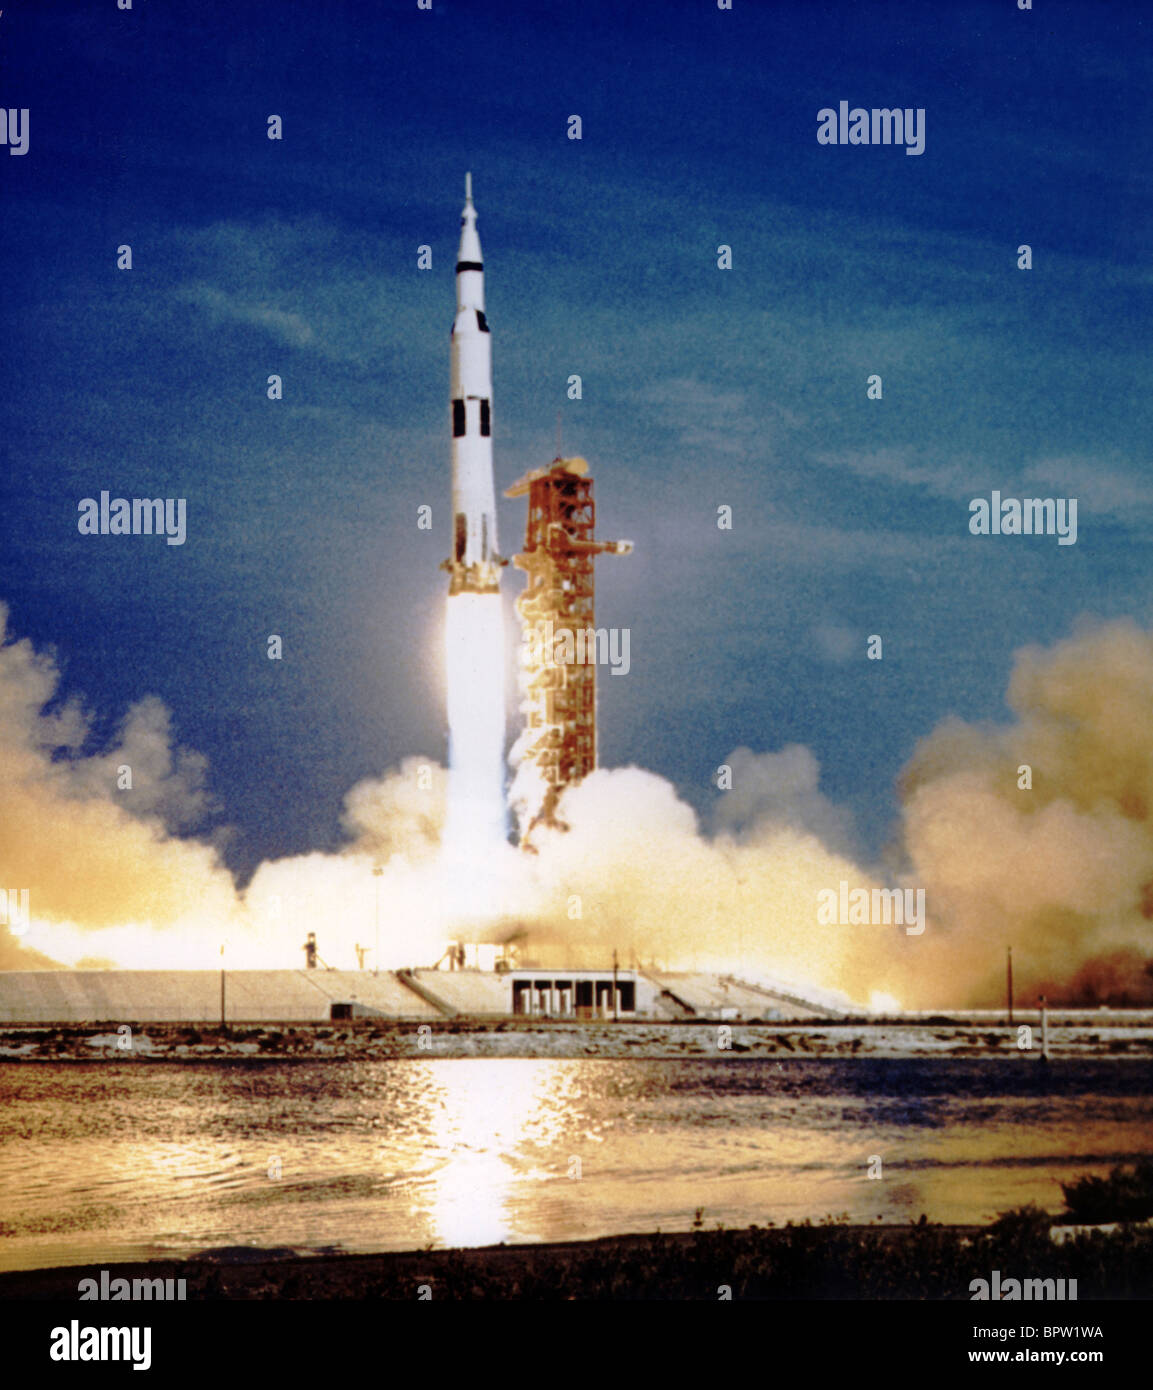 SATURN ROCKET LAUNCH APOLLO 11 (1969) Stock Photo